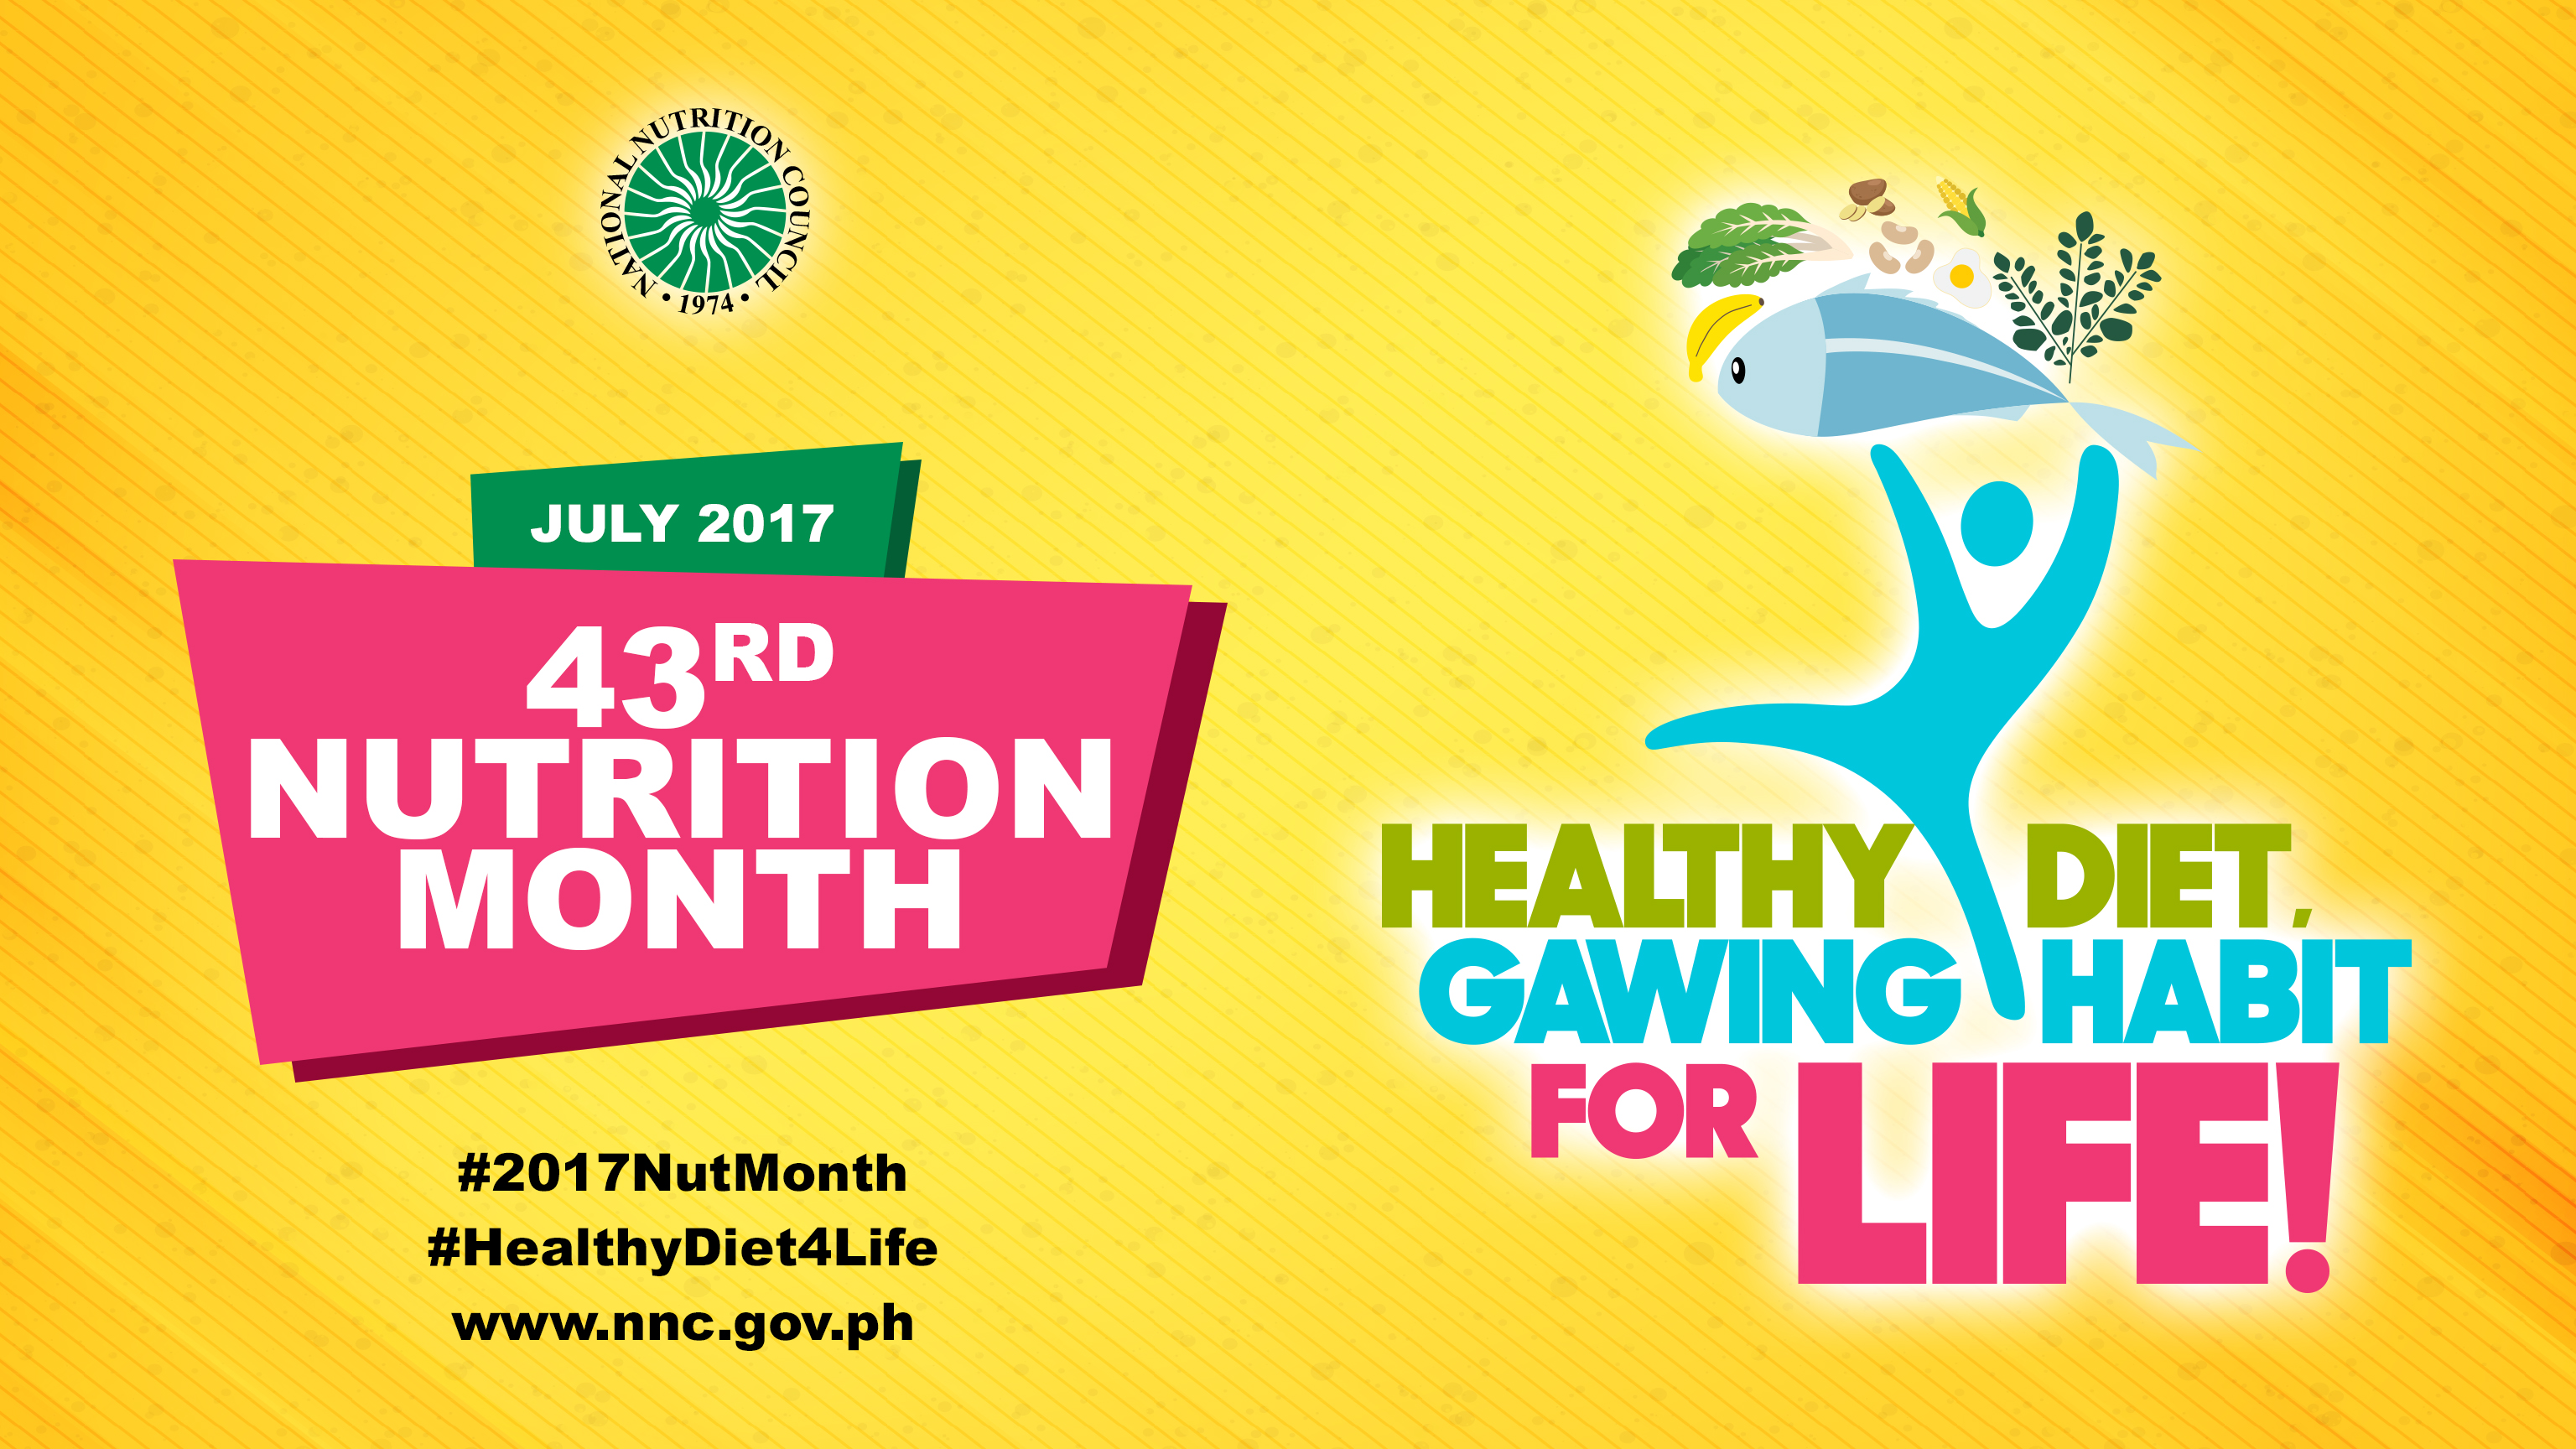 essay about nutrition month theme 2013 tagalog Nutrition month essay pagkain ng you can comment in english or tagalog grade 1 po ko need ko po pinaka-da best na slogan tungkol sa tema nutrition month.